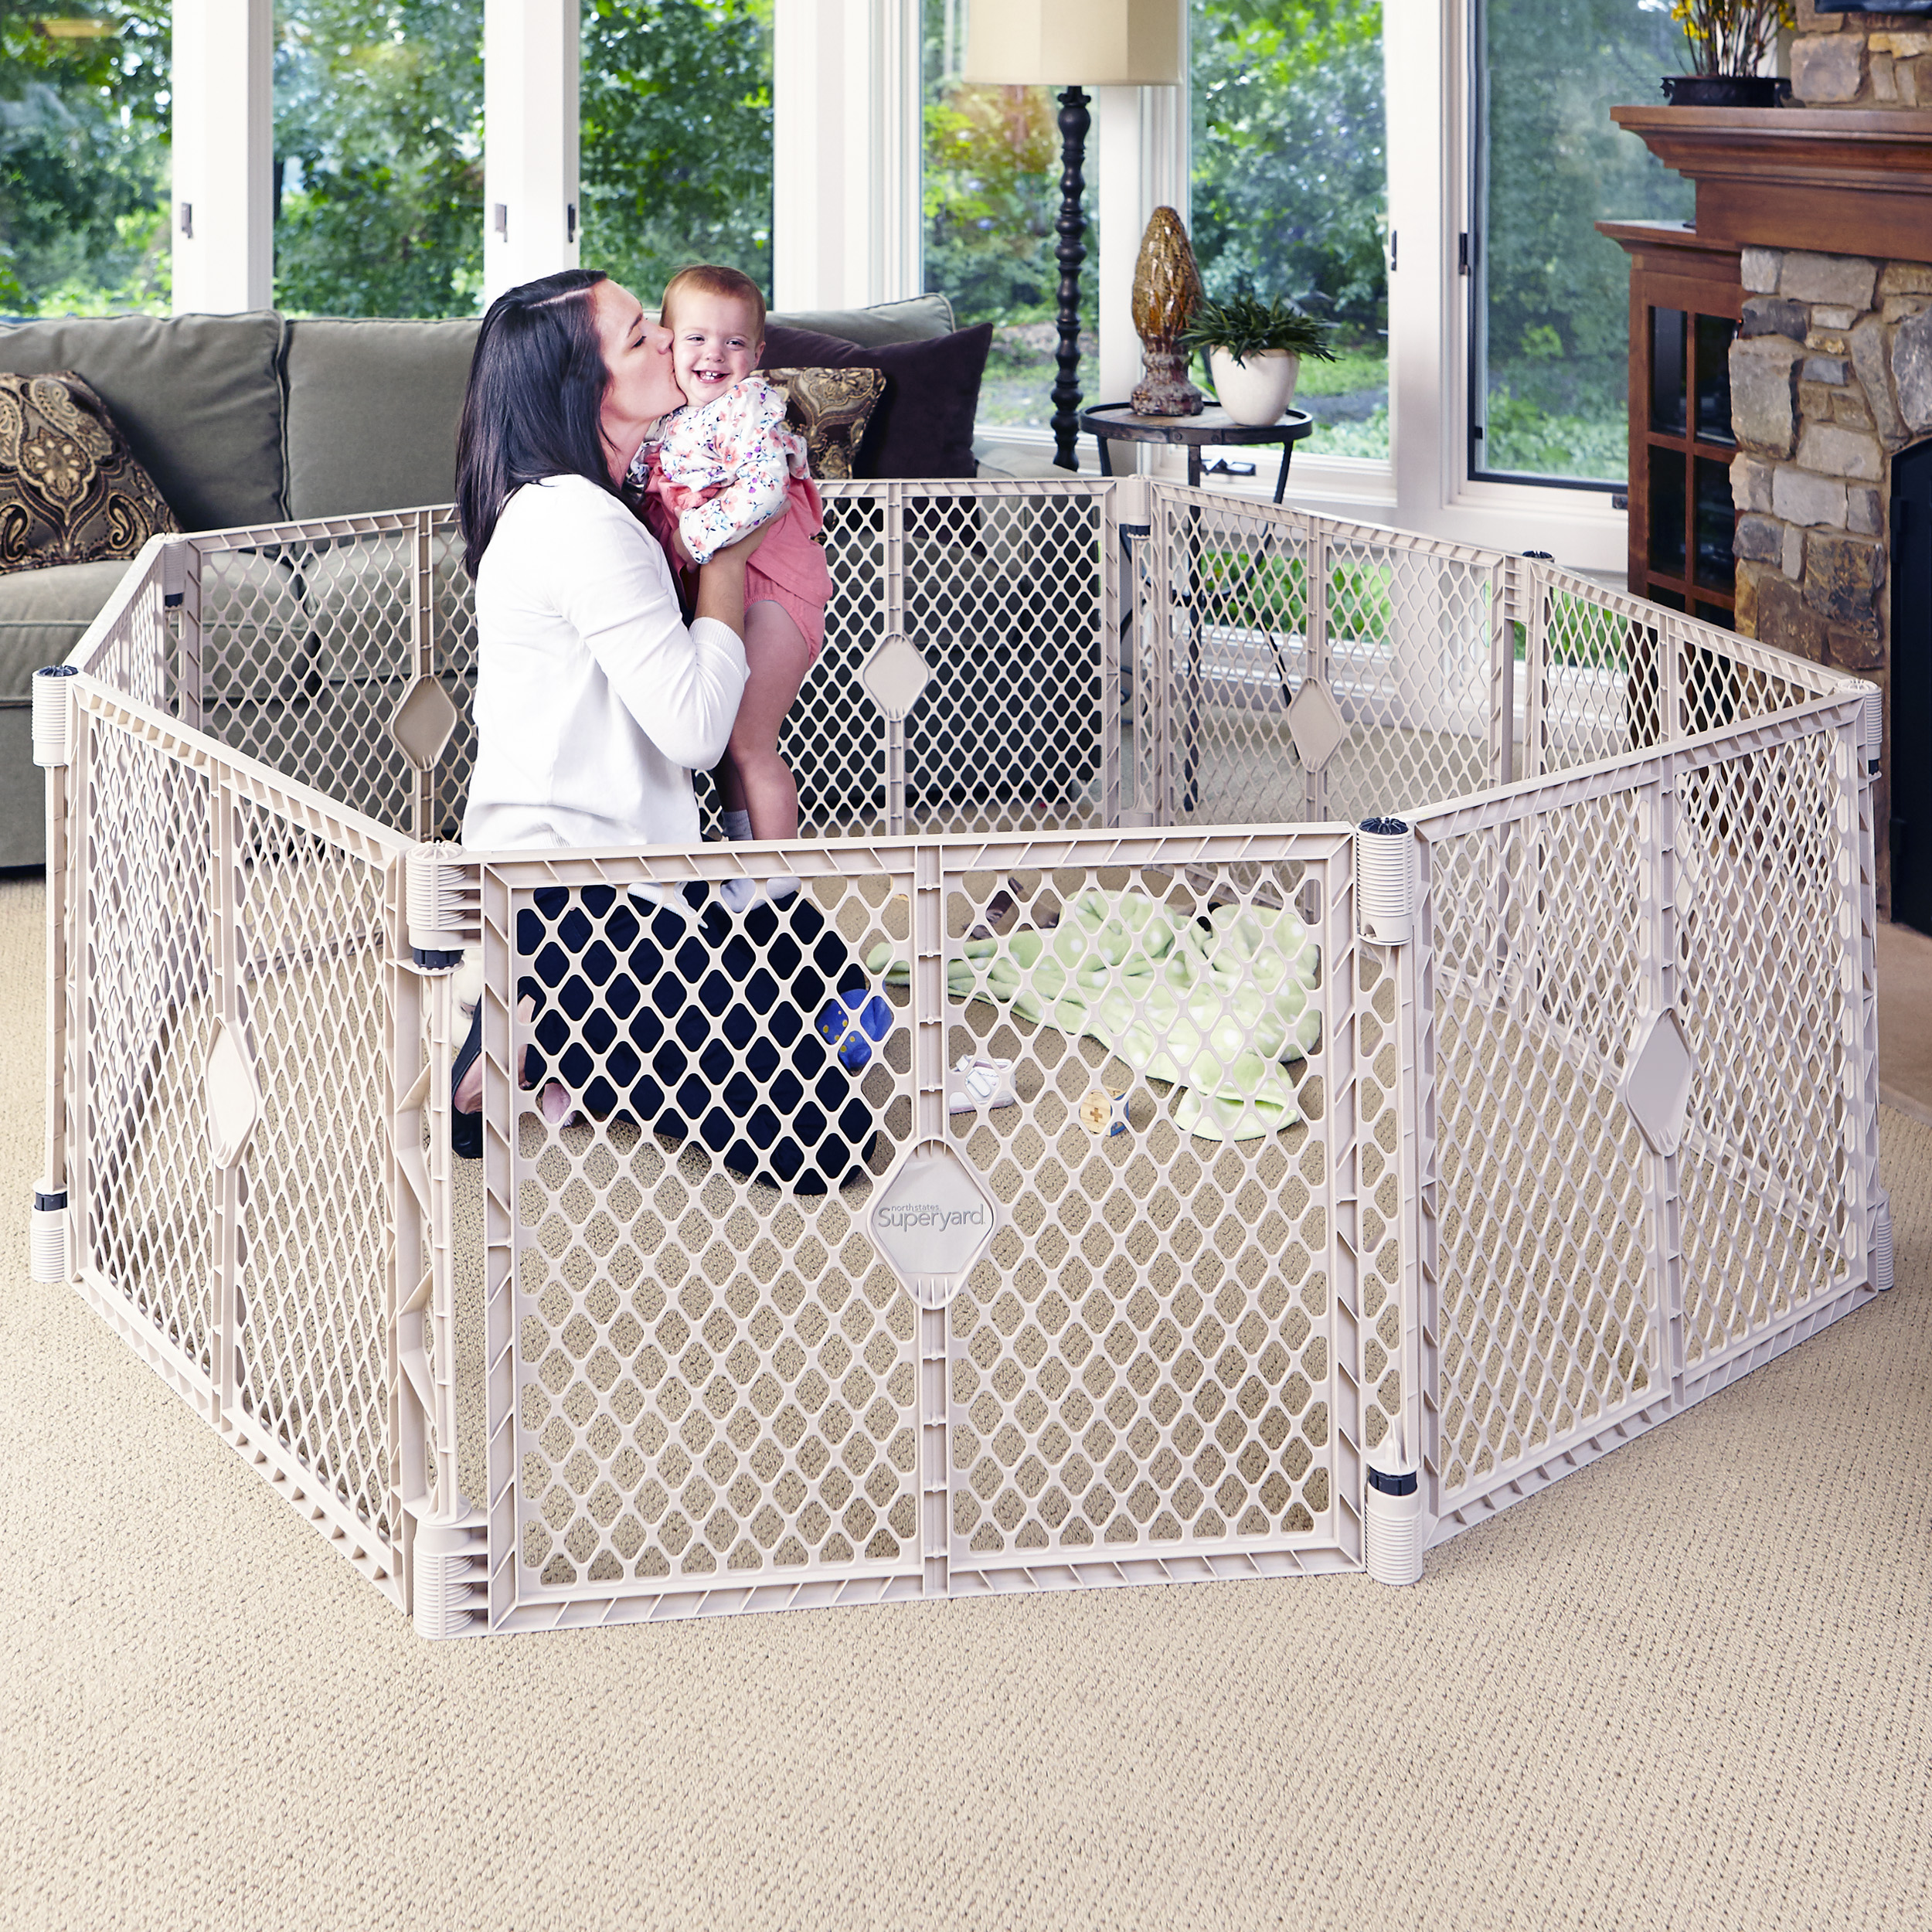 6 Panel Portable Indoor Outdoor Baby Superyard Playard Safety North States Fence